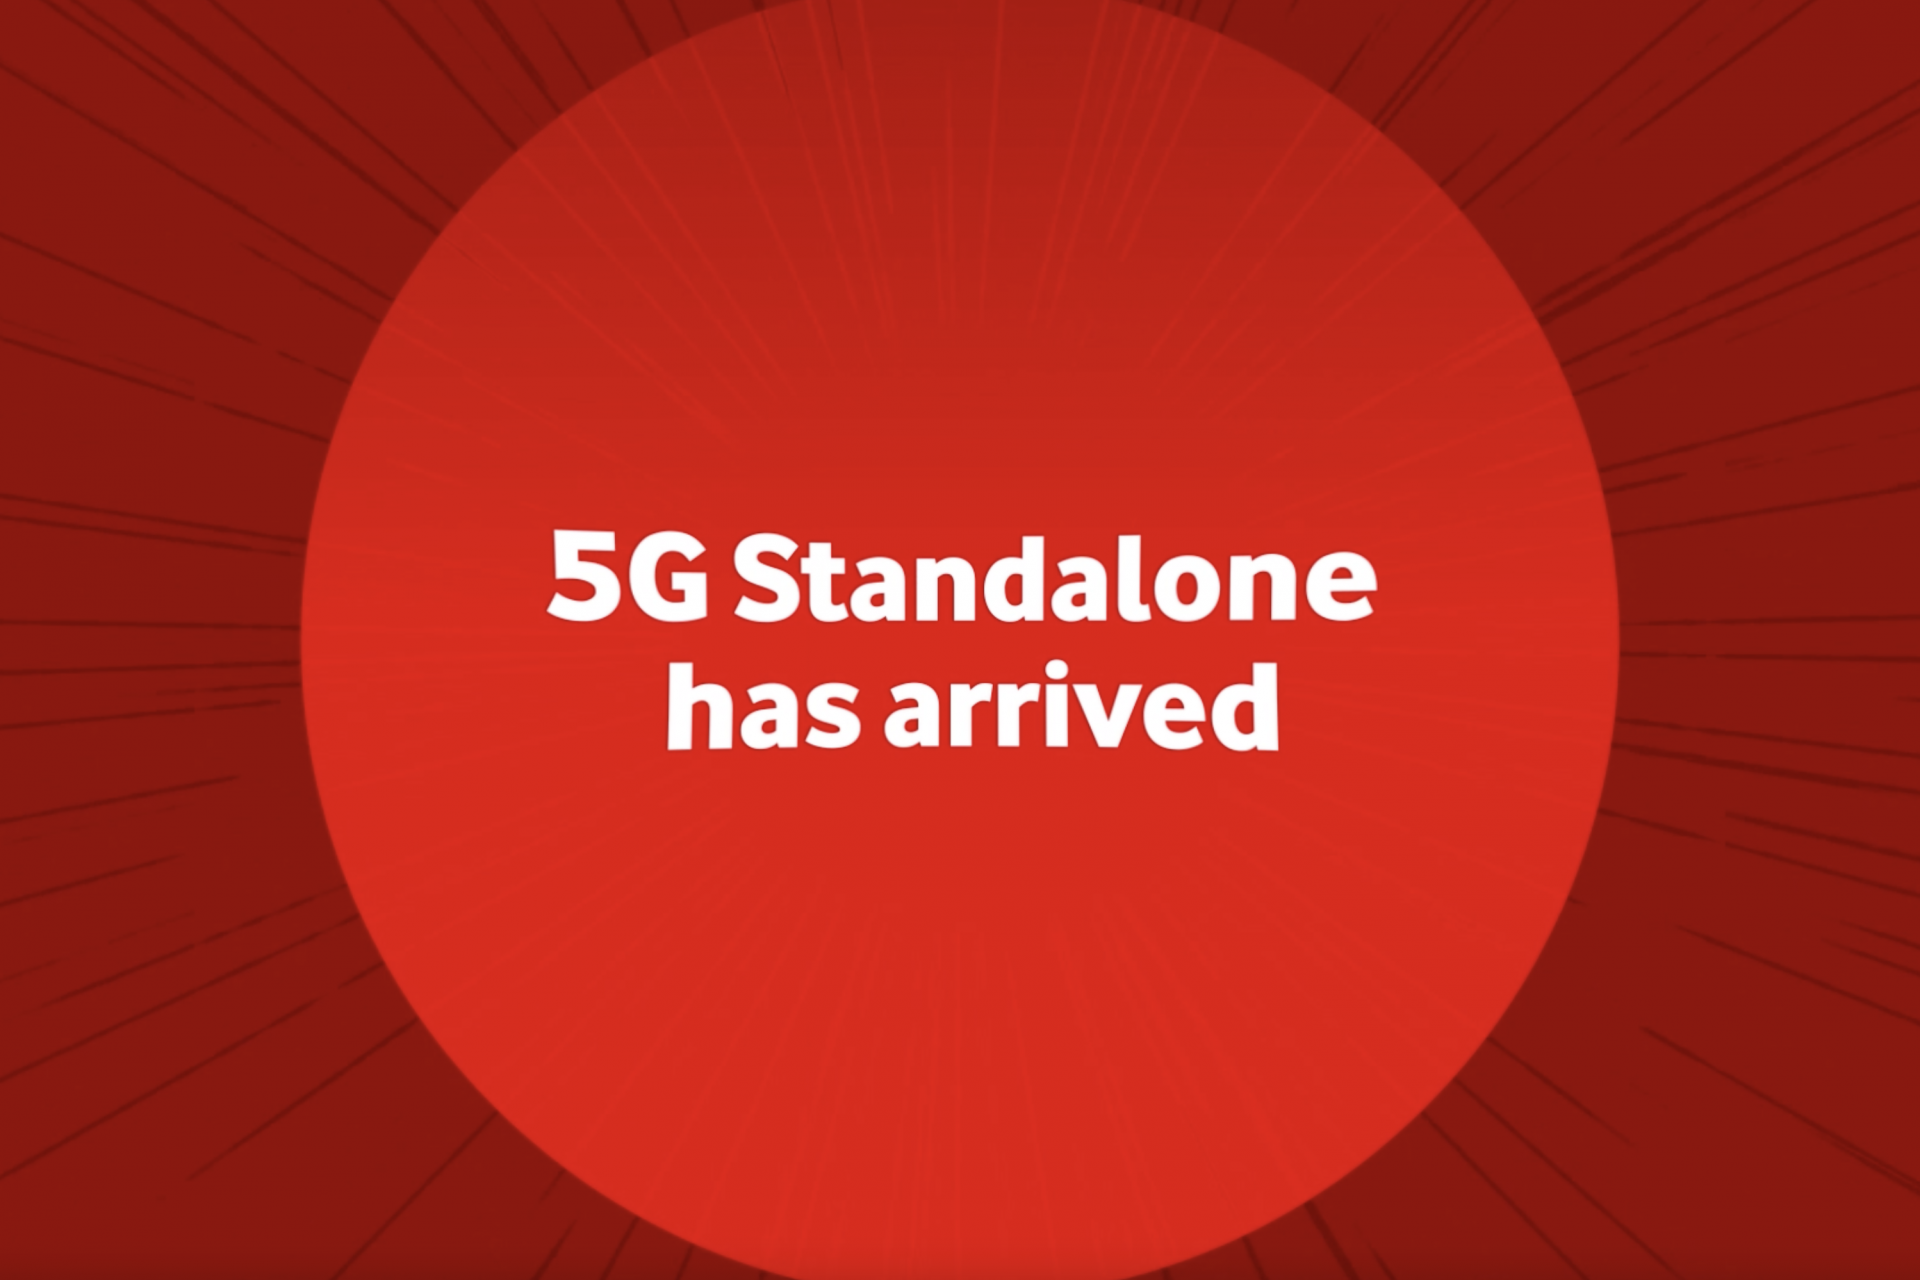 5G Standalone has arrived!